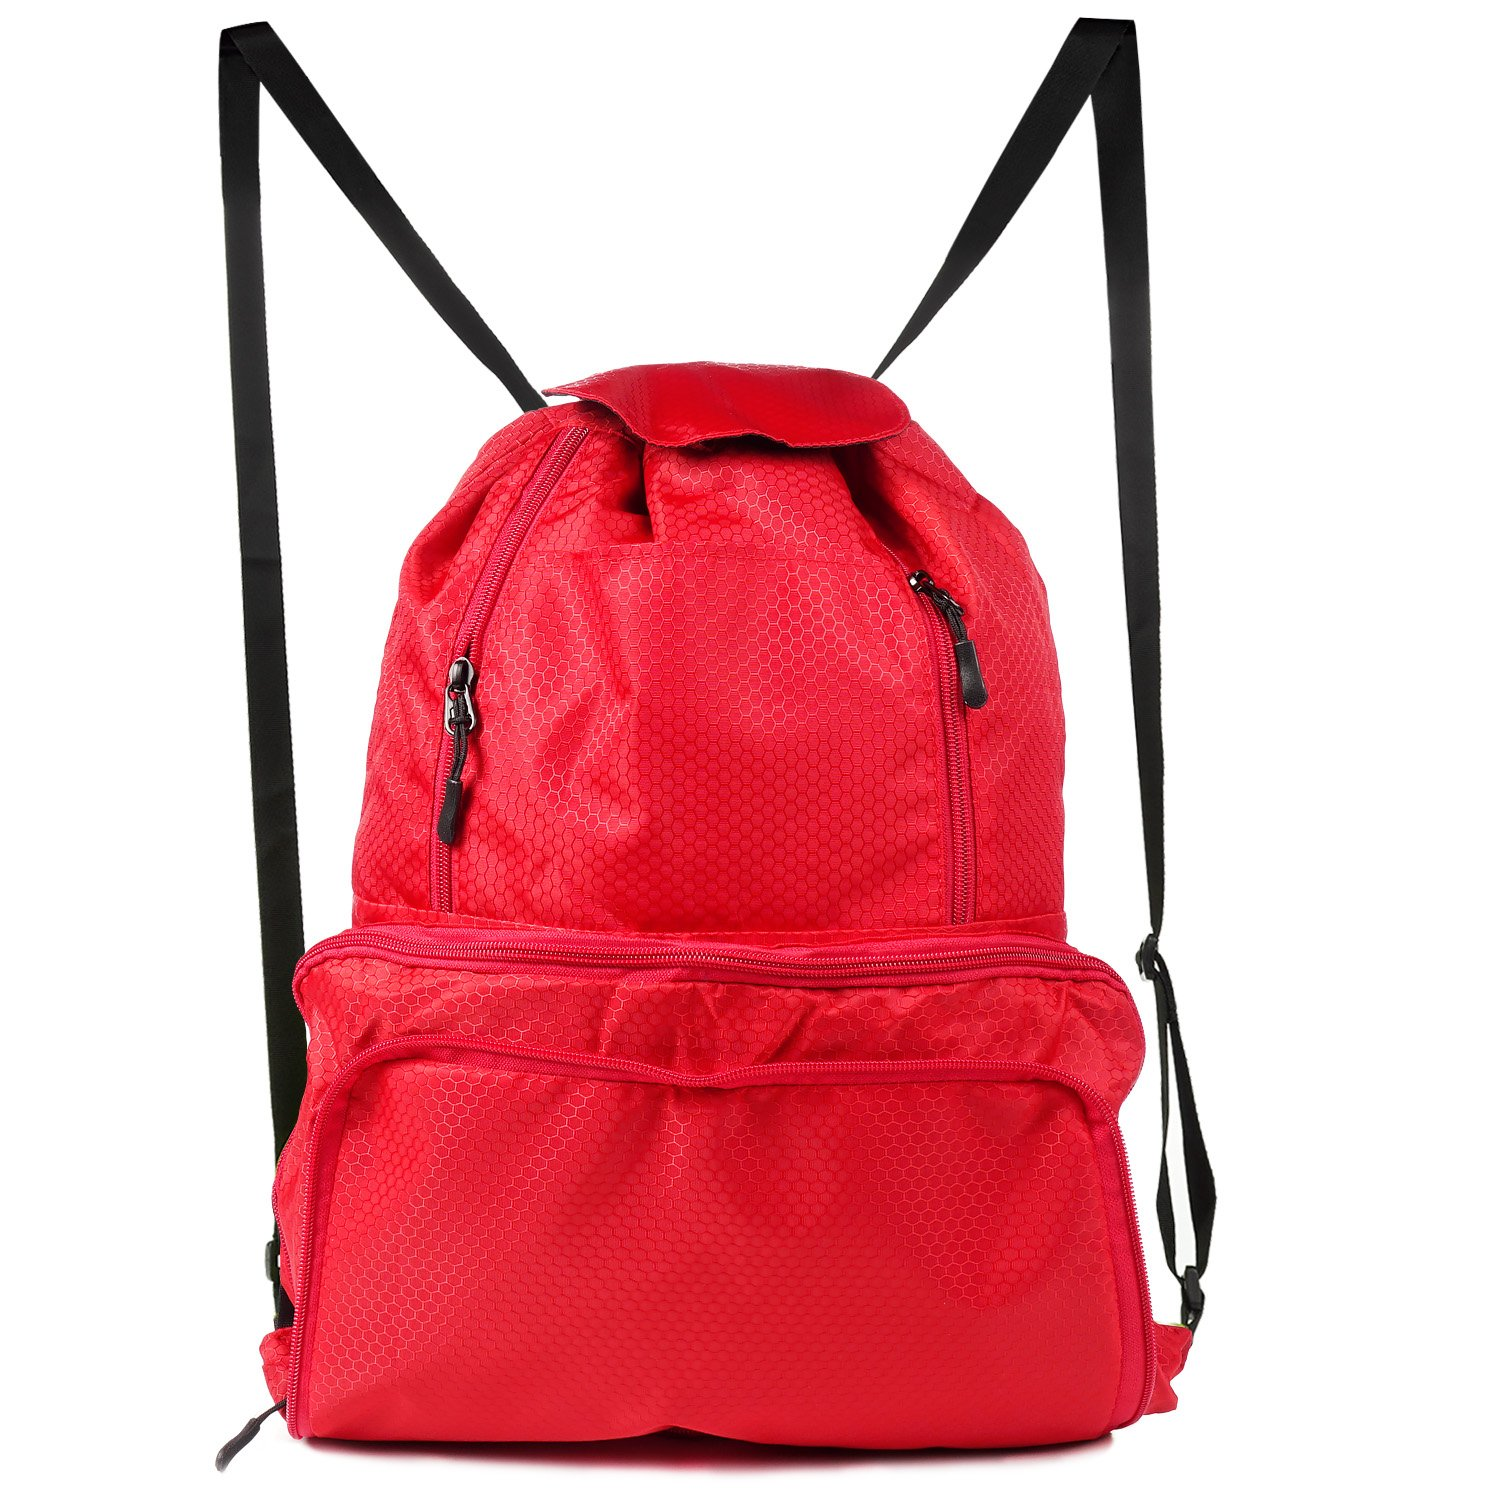 TURATA Drawstring Bag Gym Sackpack Gymsack with Pockets for Outdoor Storage (Foldable) (Black)